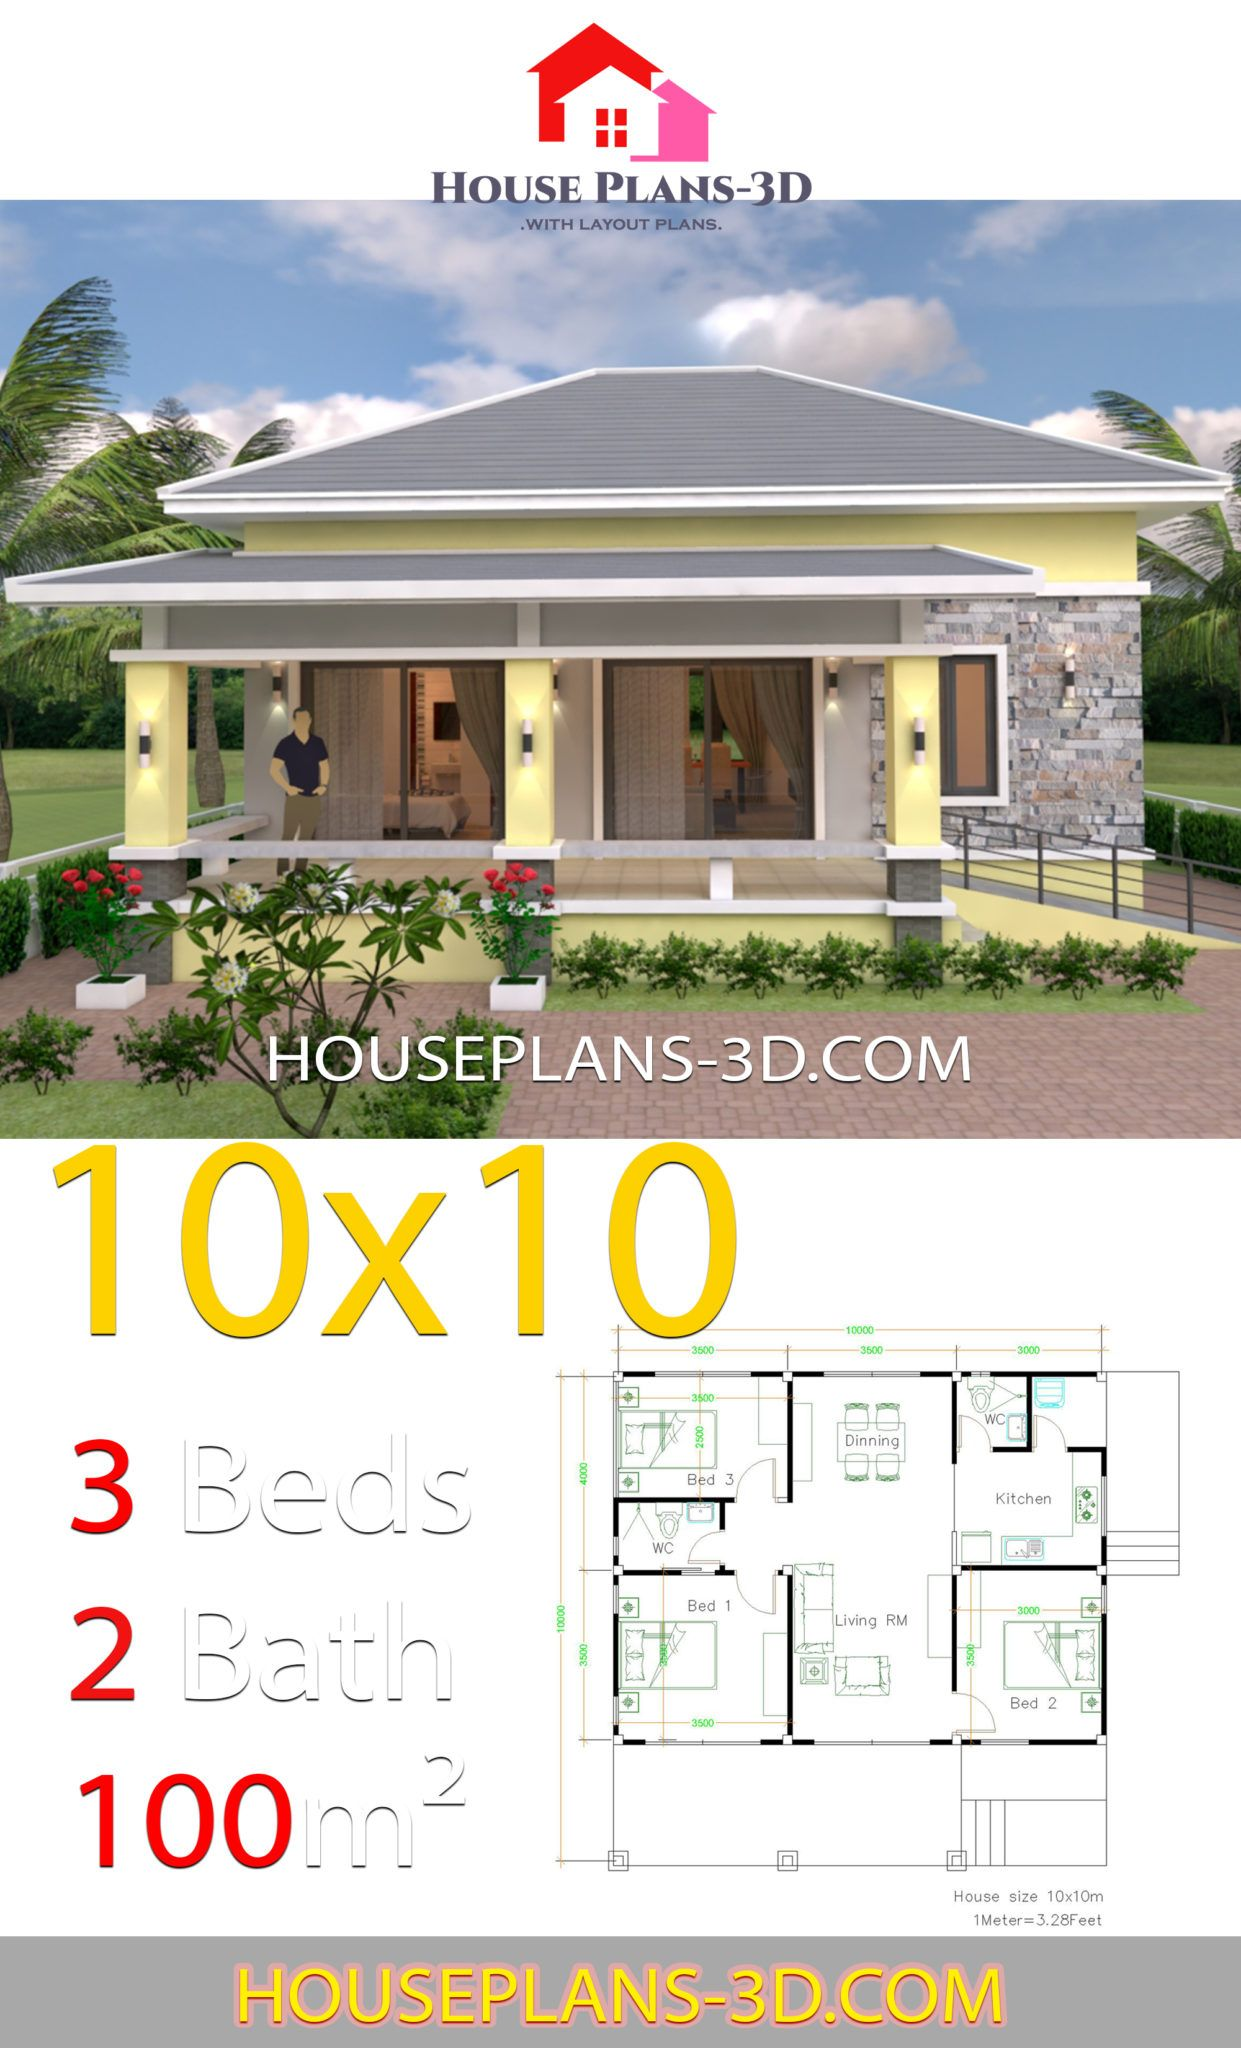 10x10 Bedroom Plans: House Design 10x10 With 3 Bedrooms Hip Roof In 2020